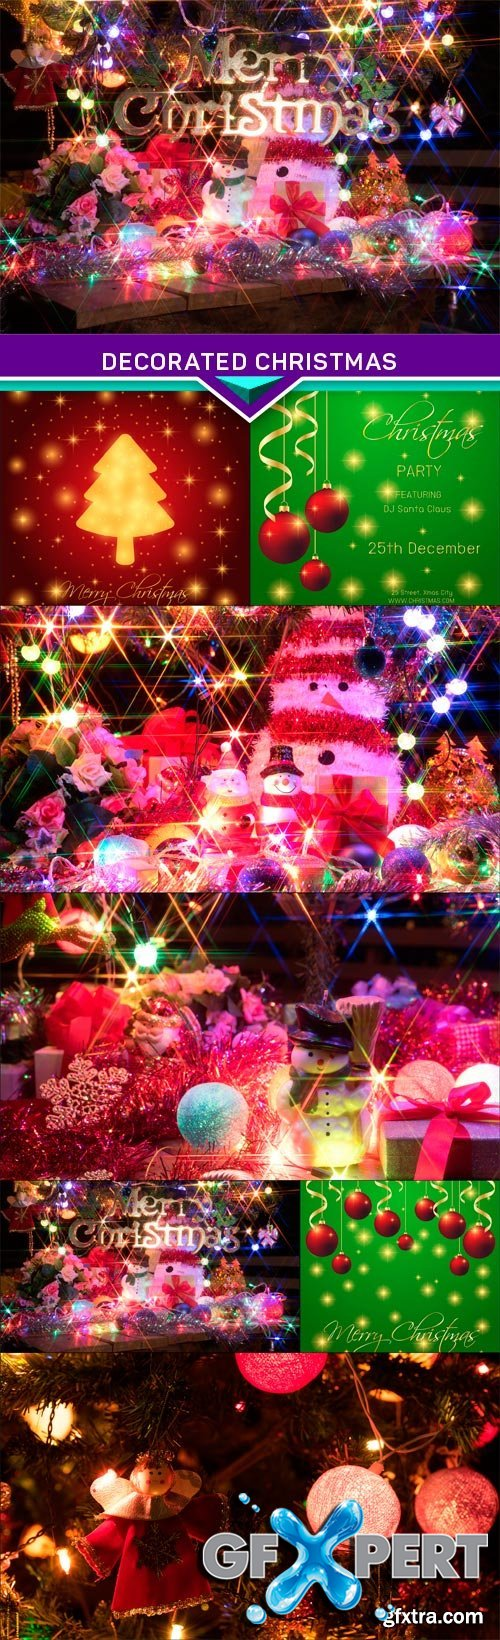 Snowman and a decorated christmas tree with light 7X JPEG